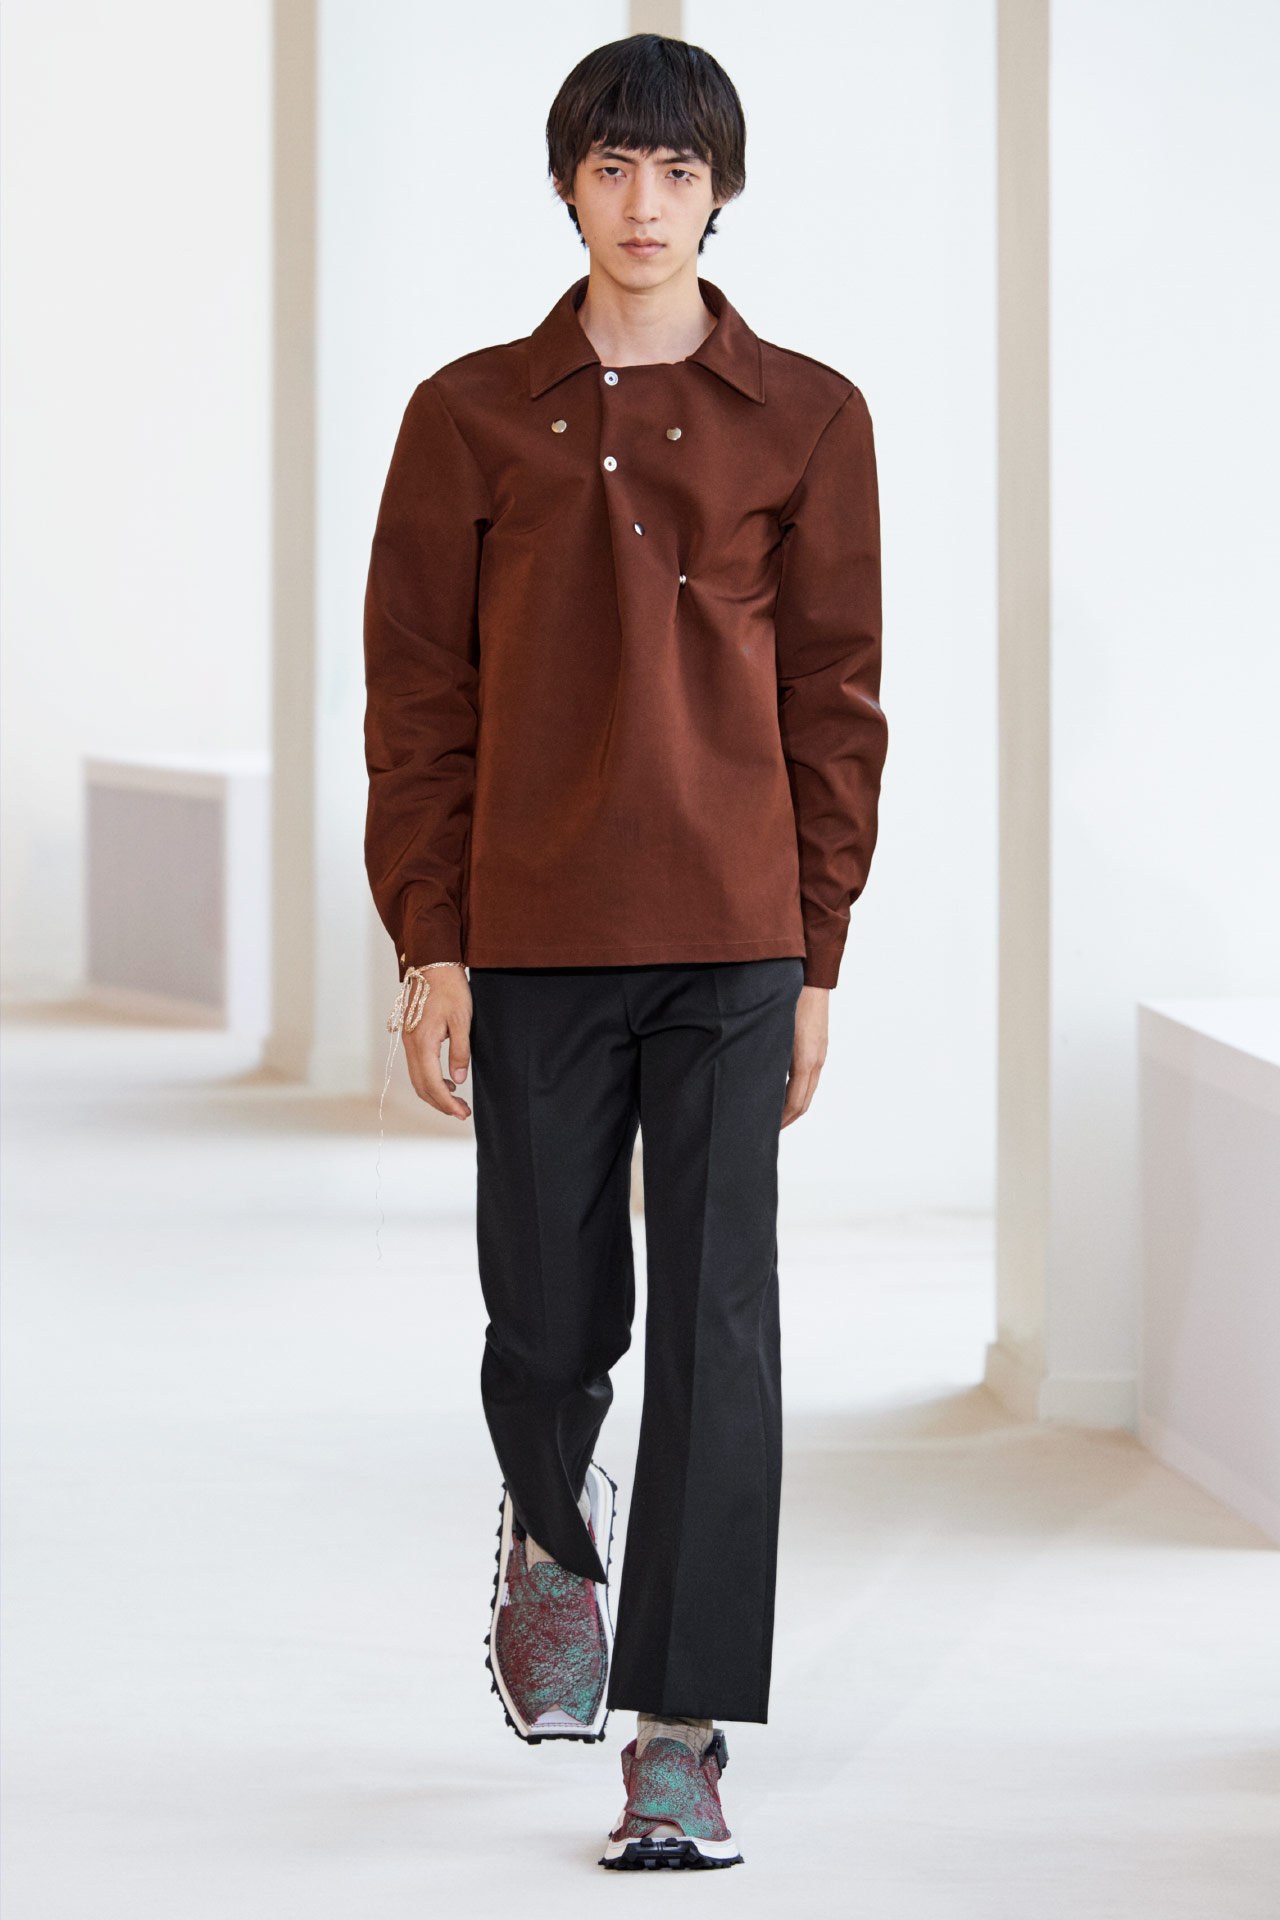 Look Spring/Summer, image 12